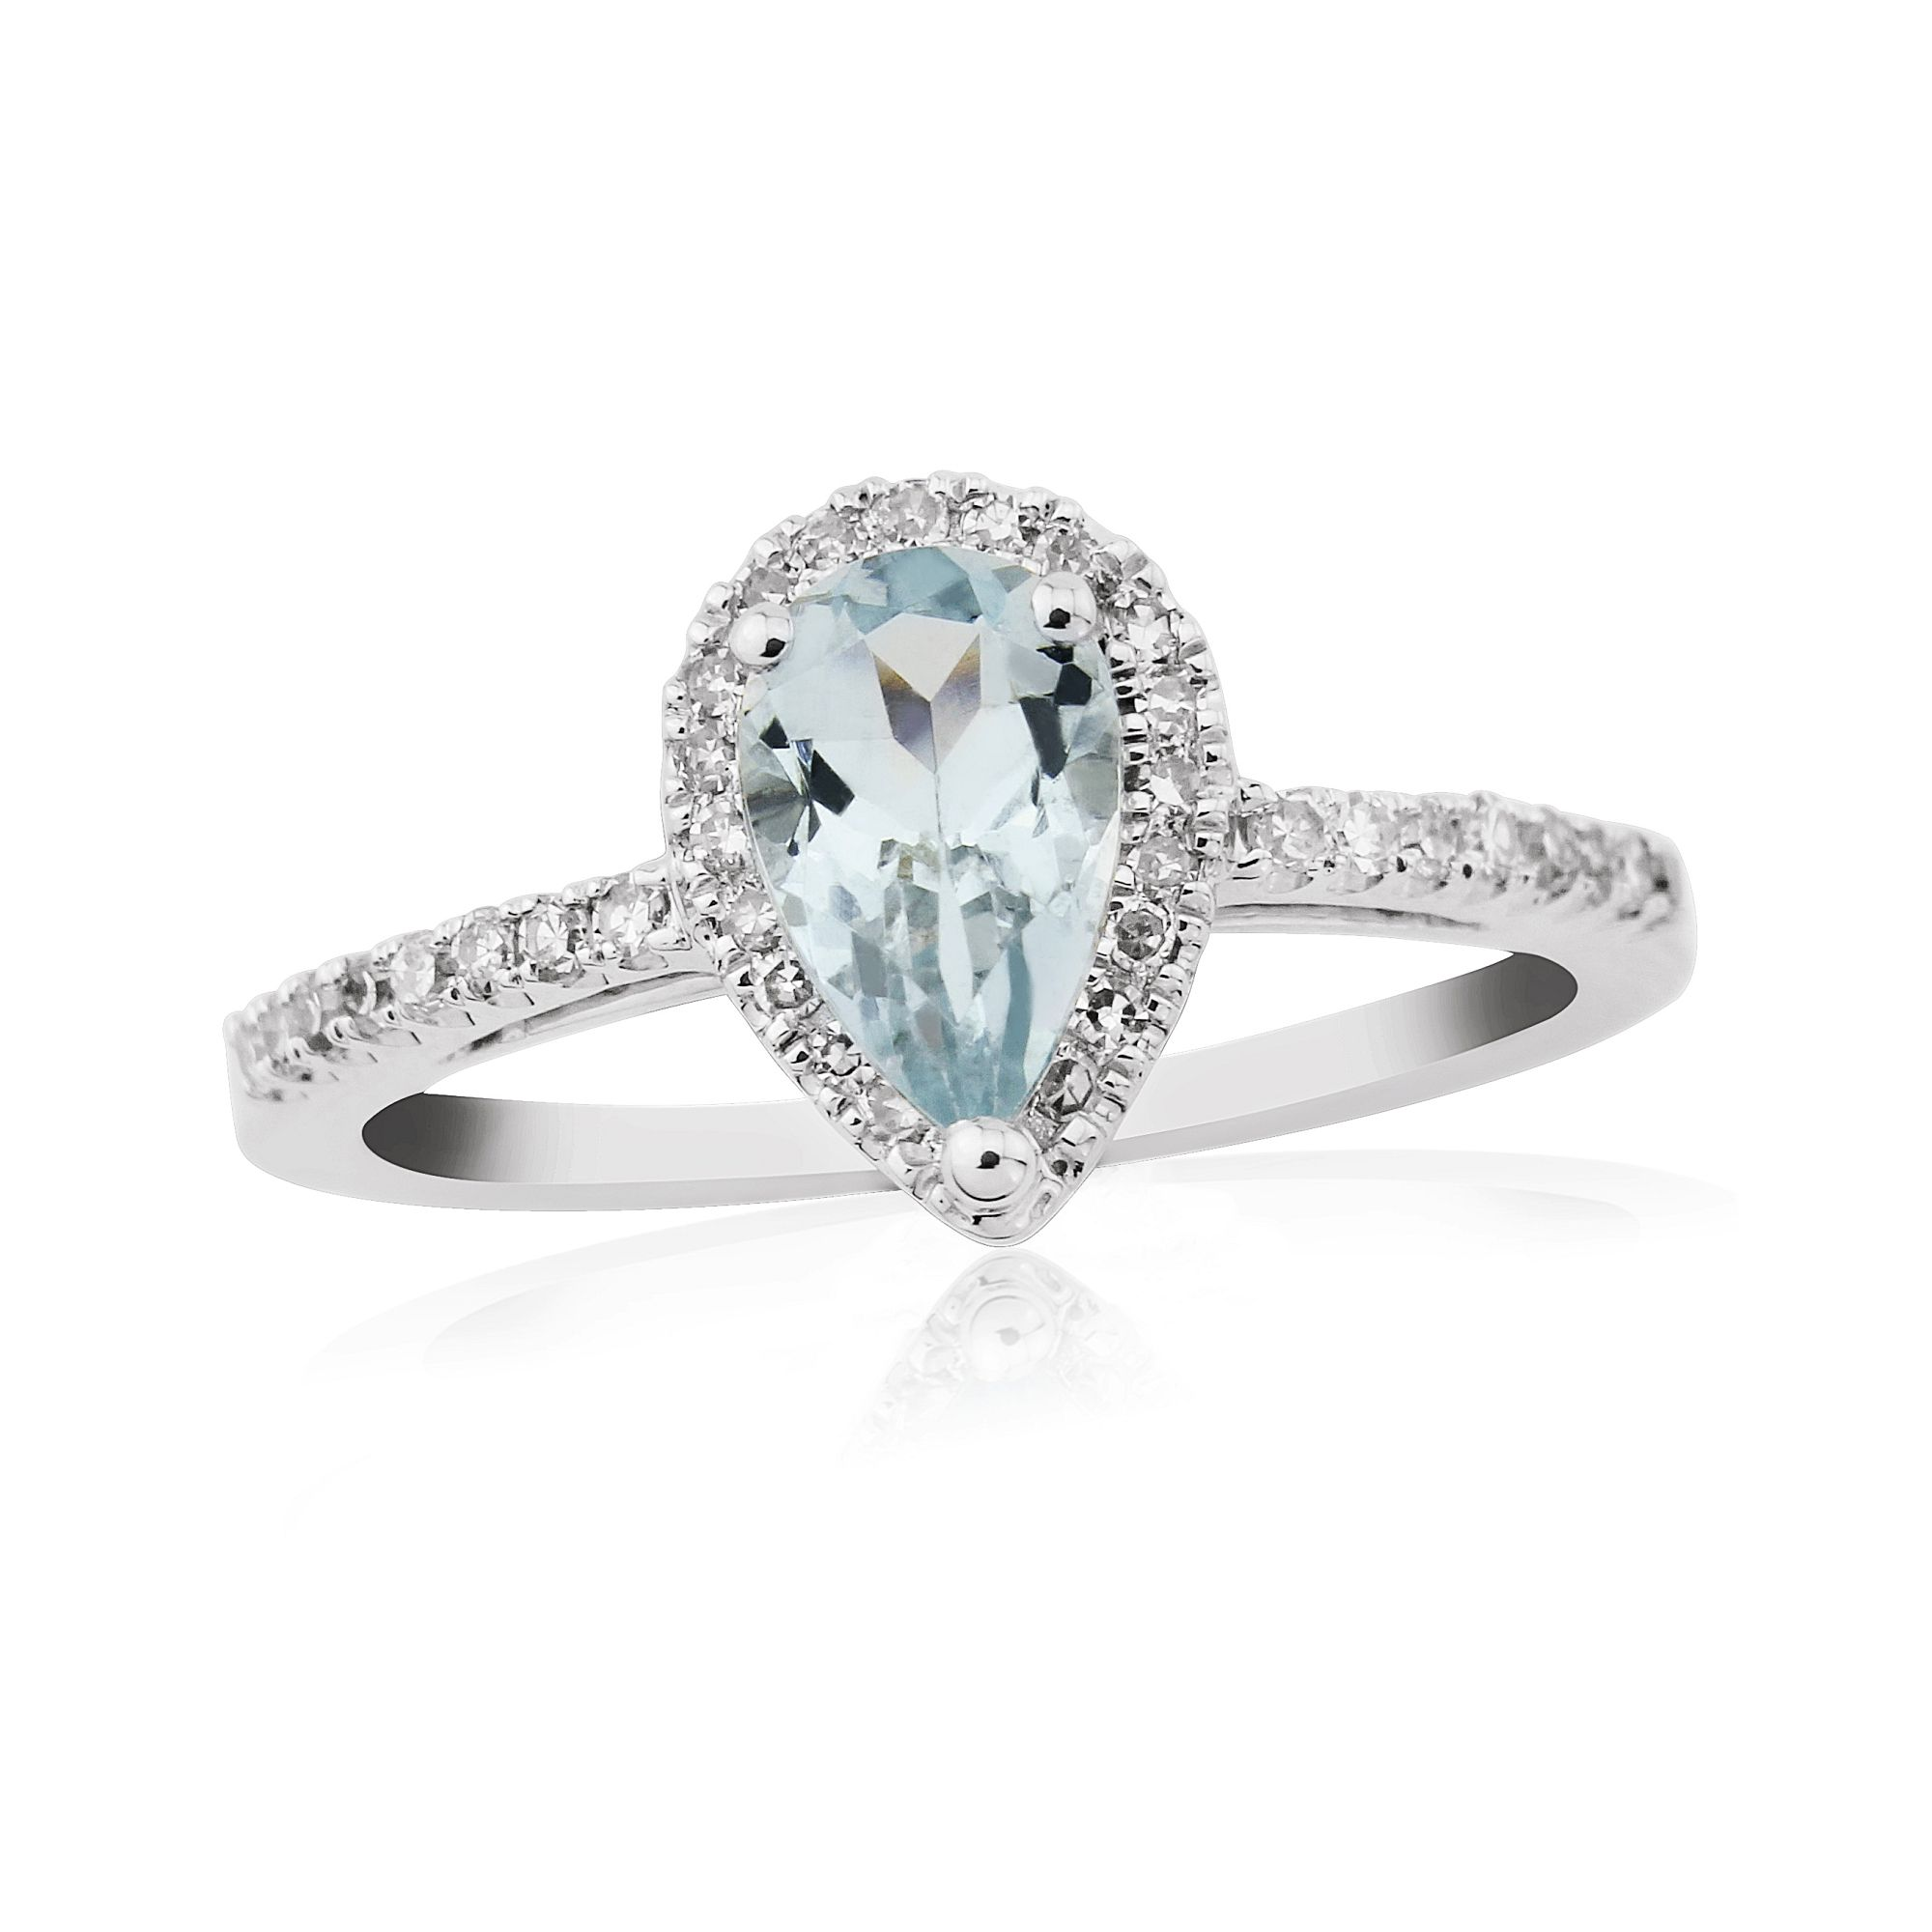 pear collection rings ring engagement platinum twist with goldsmiths diamond forged mccaul shaped